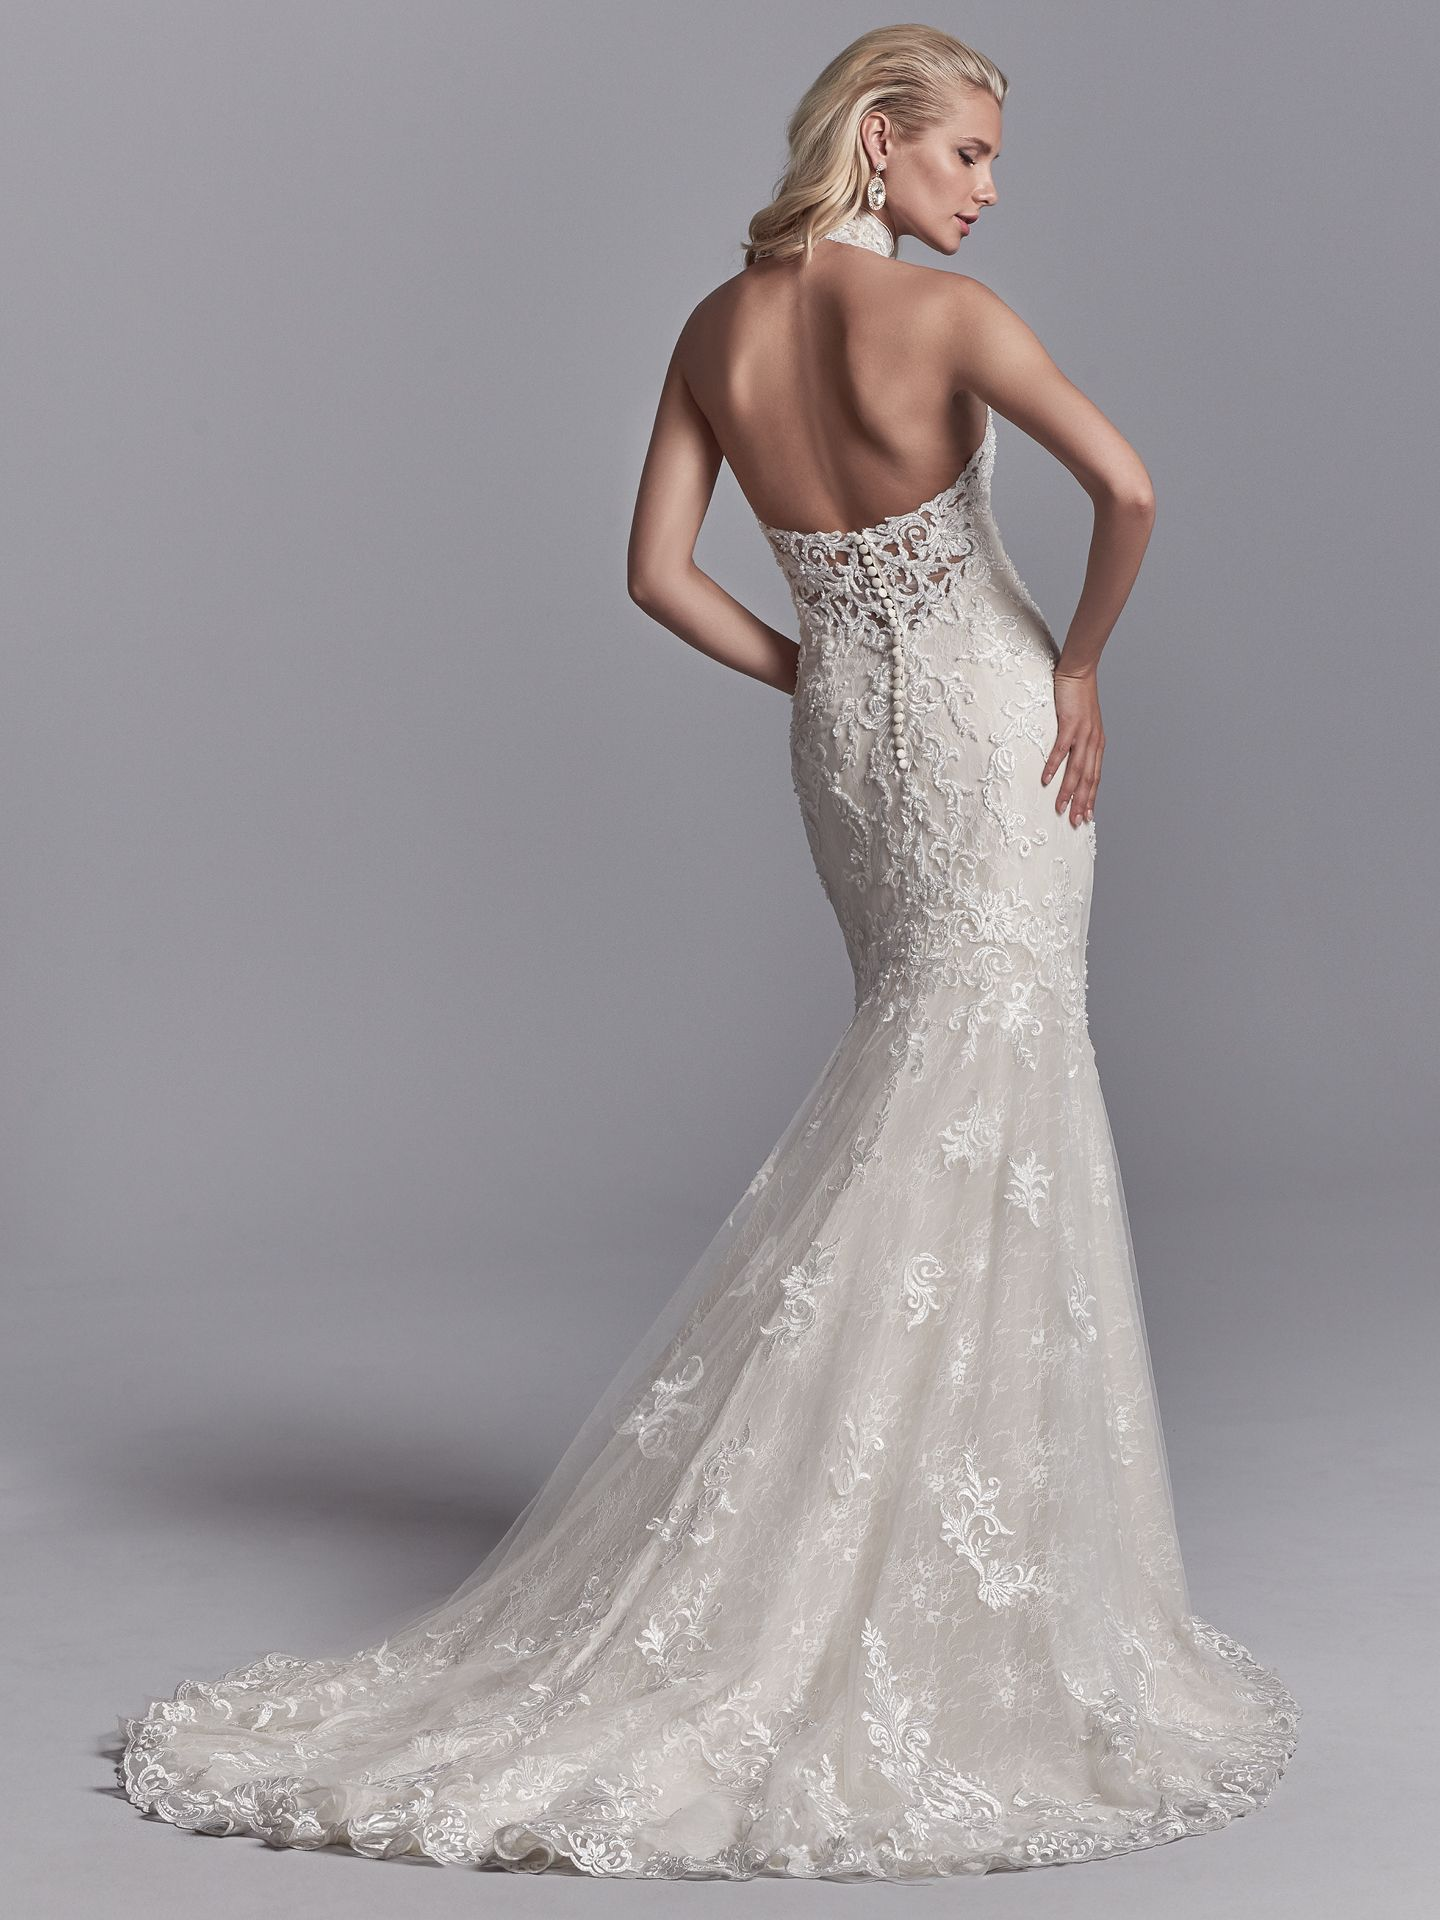 Nerida by Sottero and Midgley. Embroidered lace motifs and beading cascade over textured tulle in this fit-and-flare wedding dress, trimming the illusion halter over sweetheart neckline and illusion scoop back. These 10 Romantic Gowns are Maggie Sottero's Top-Pinned of 2017!